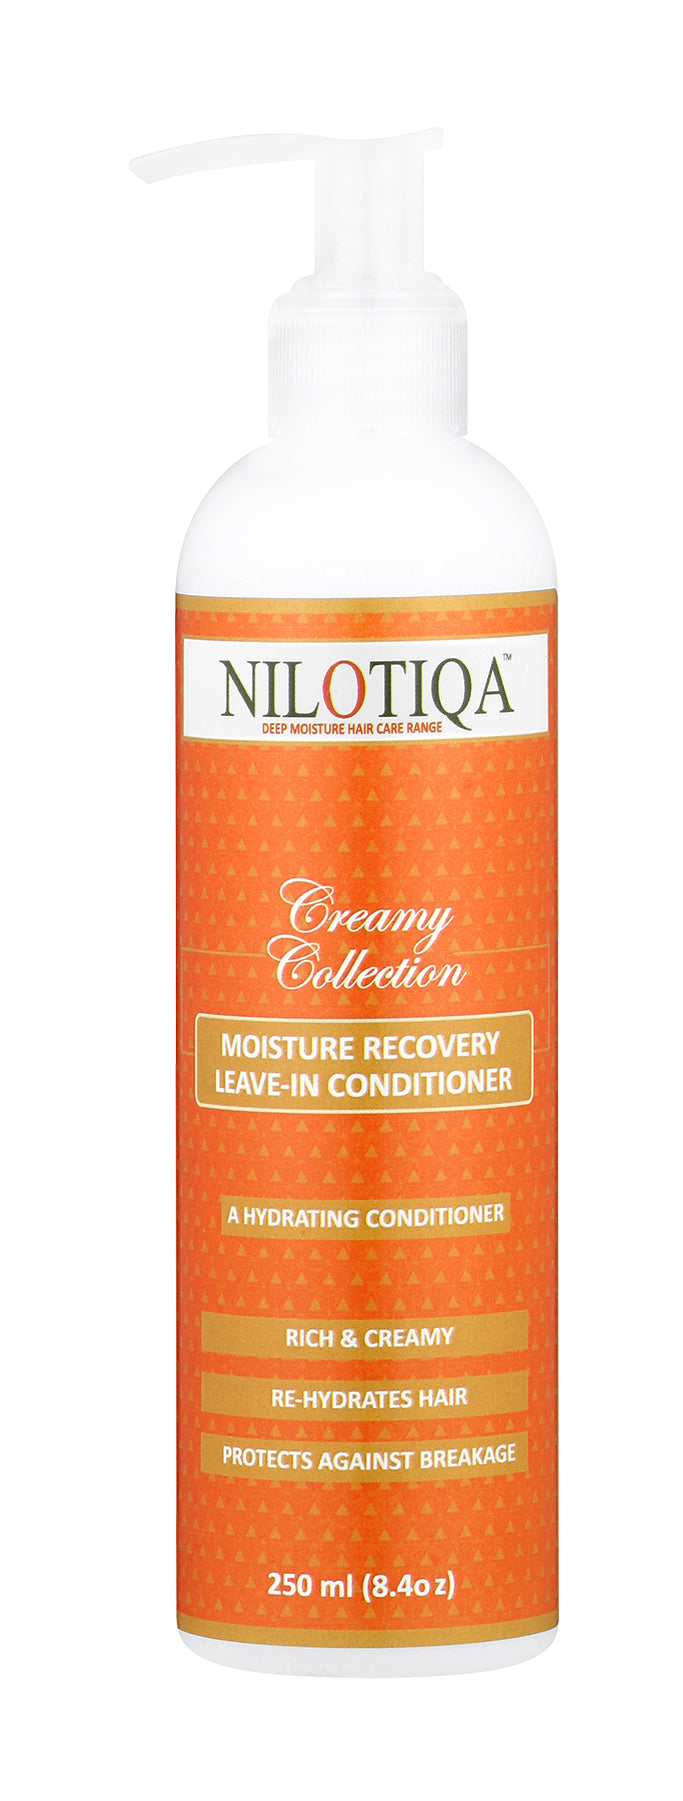 250ml Moisture Recovery Leave-In Conditioner